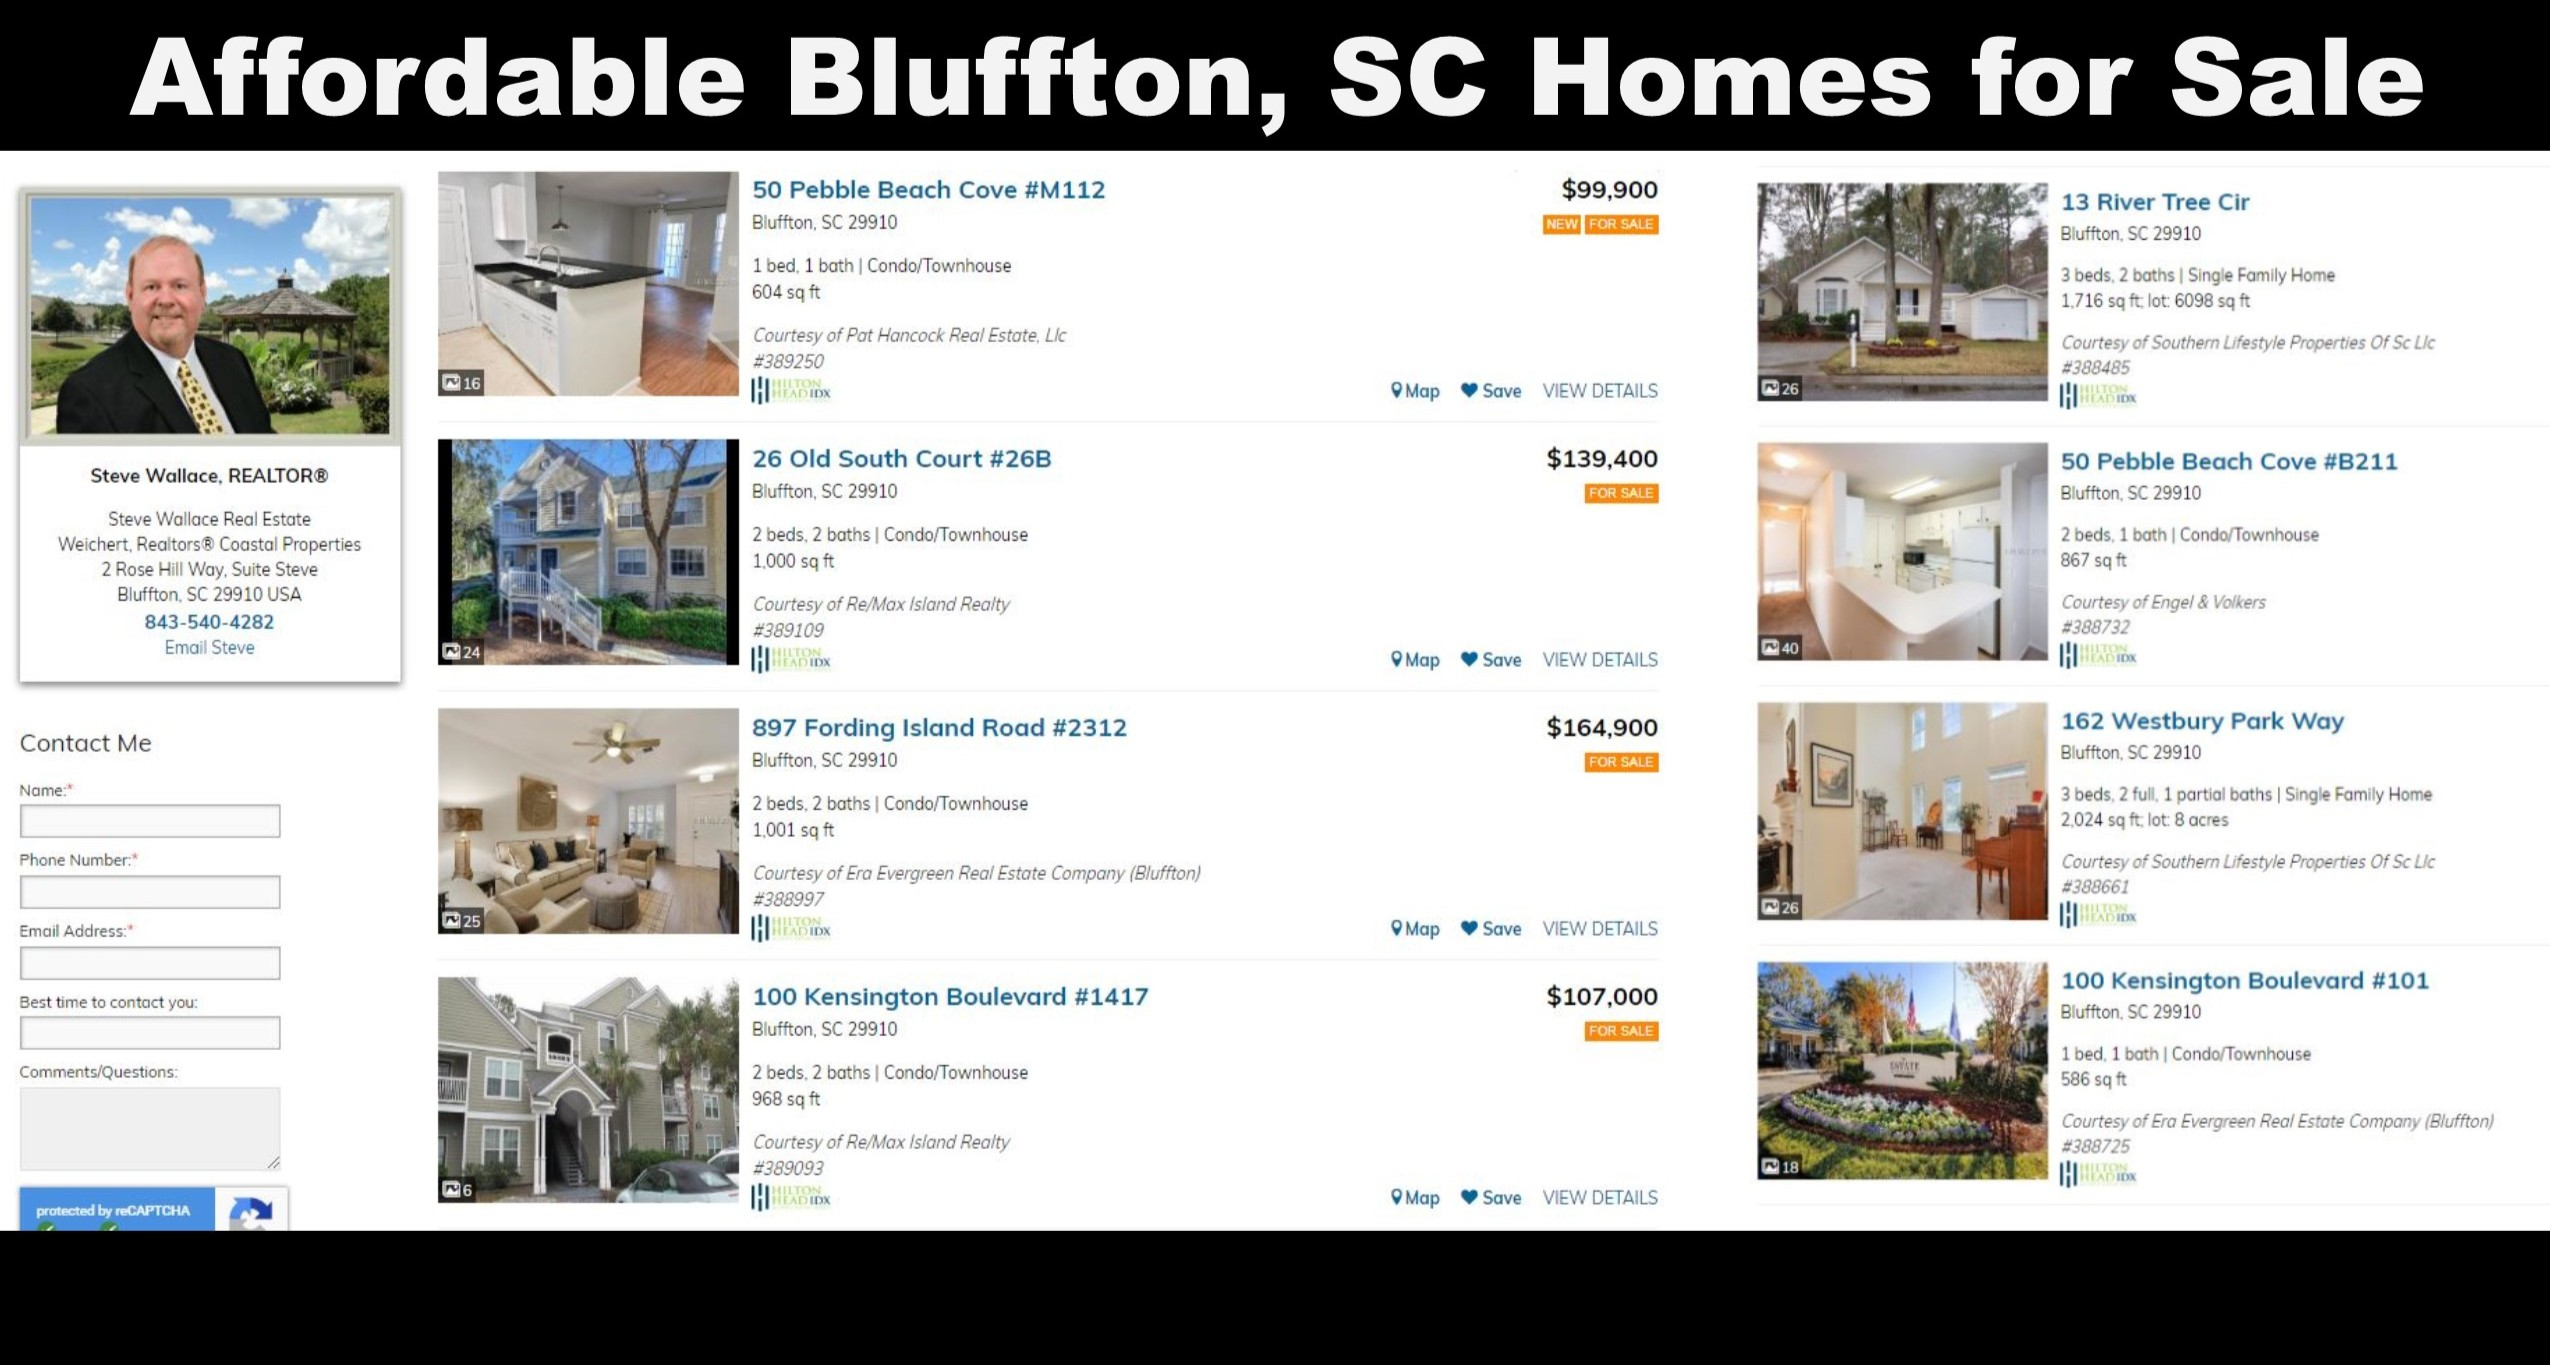 Affordable Homes, Single-family, Bluffton, SC, Townhouses, Condos, Villas